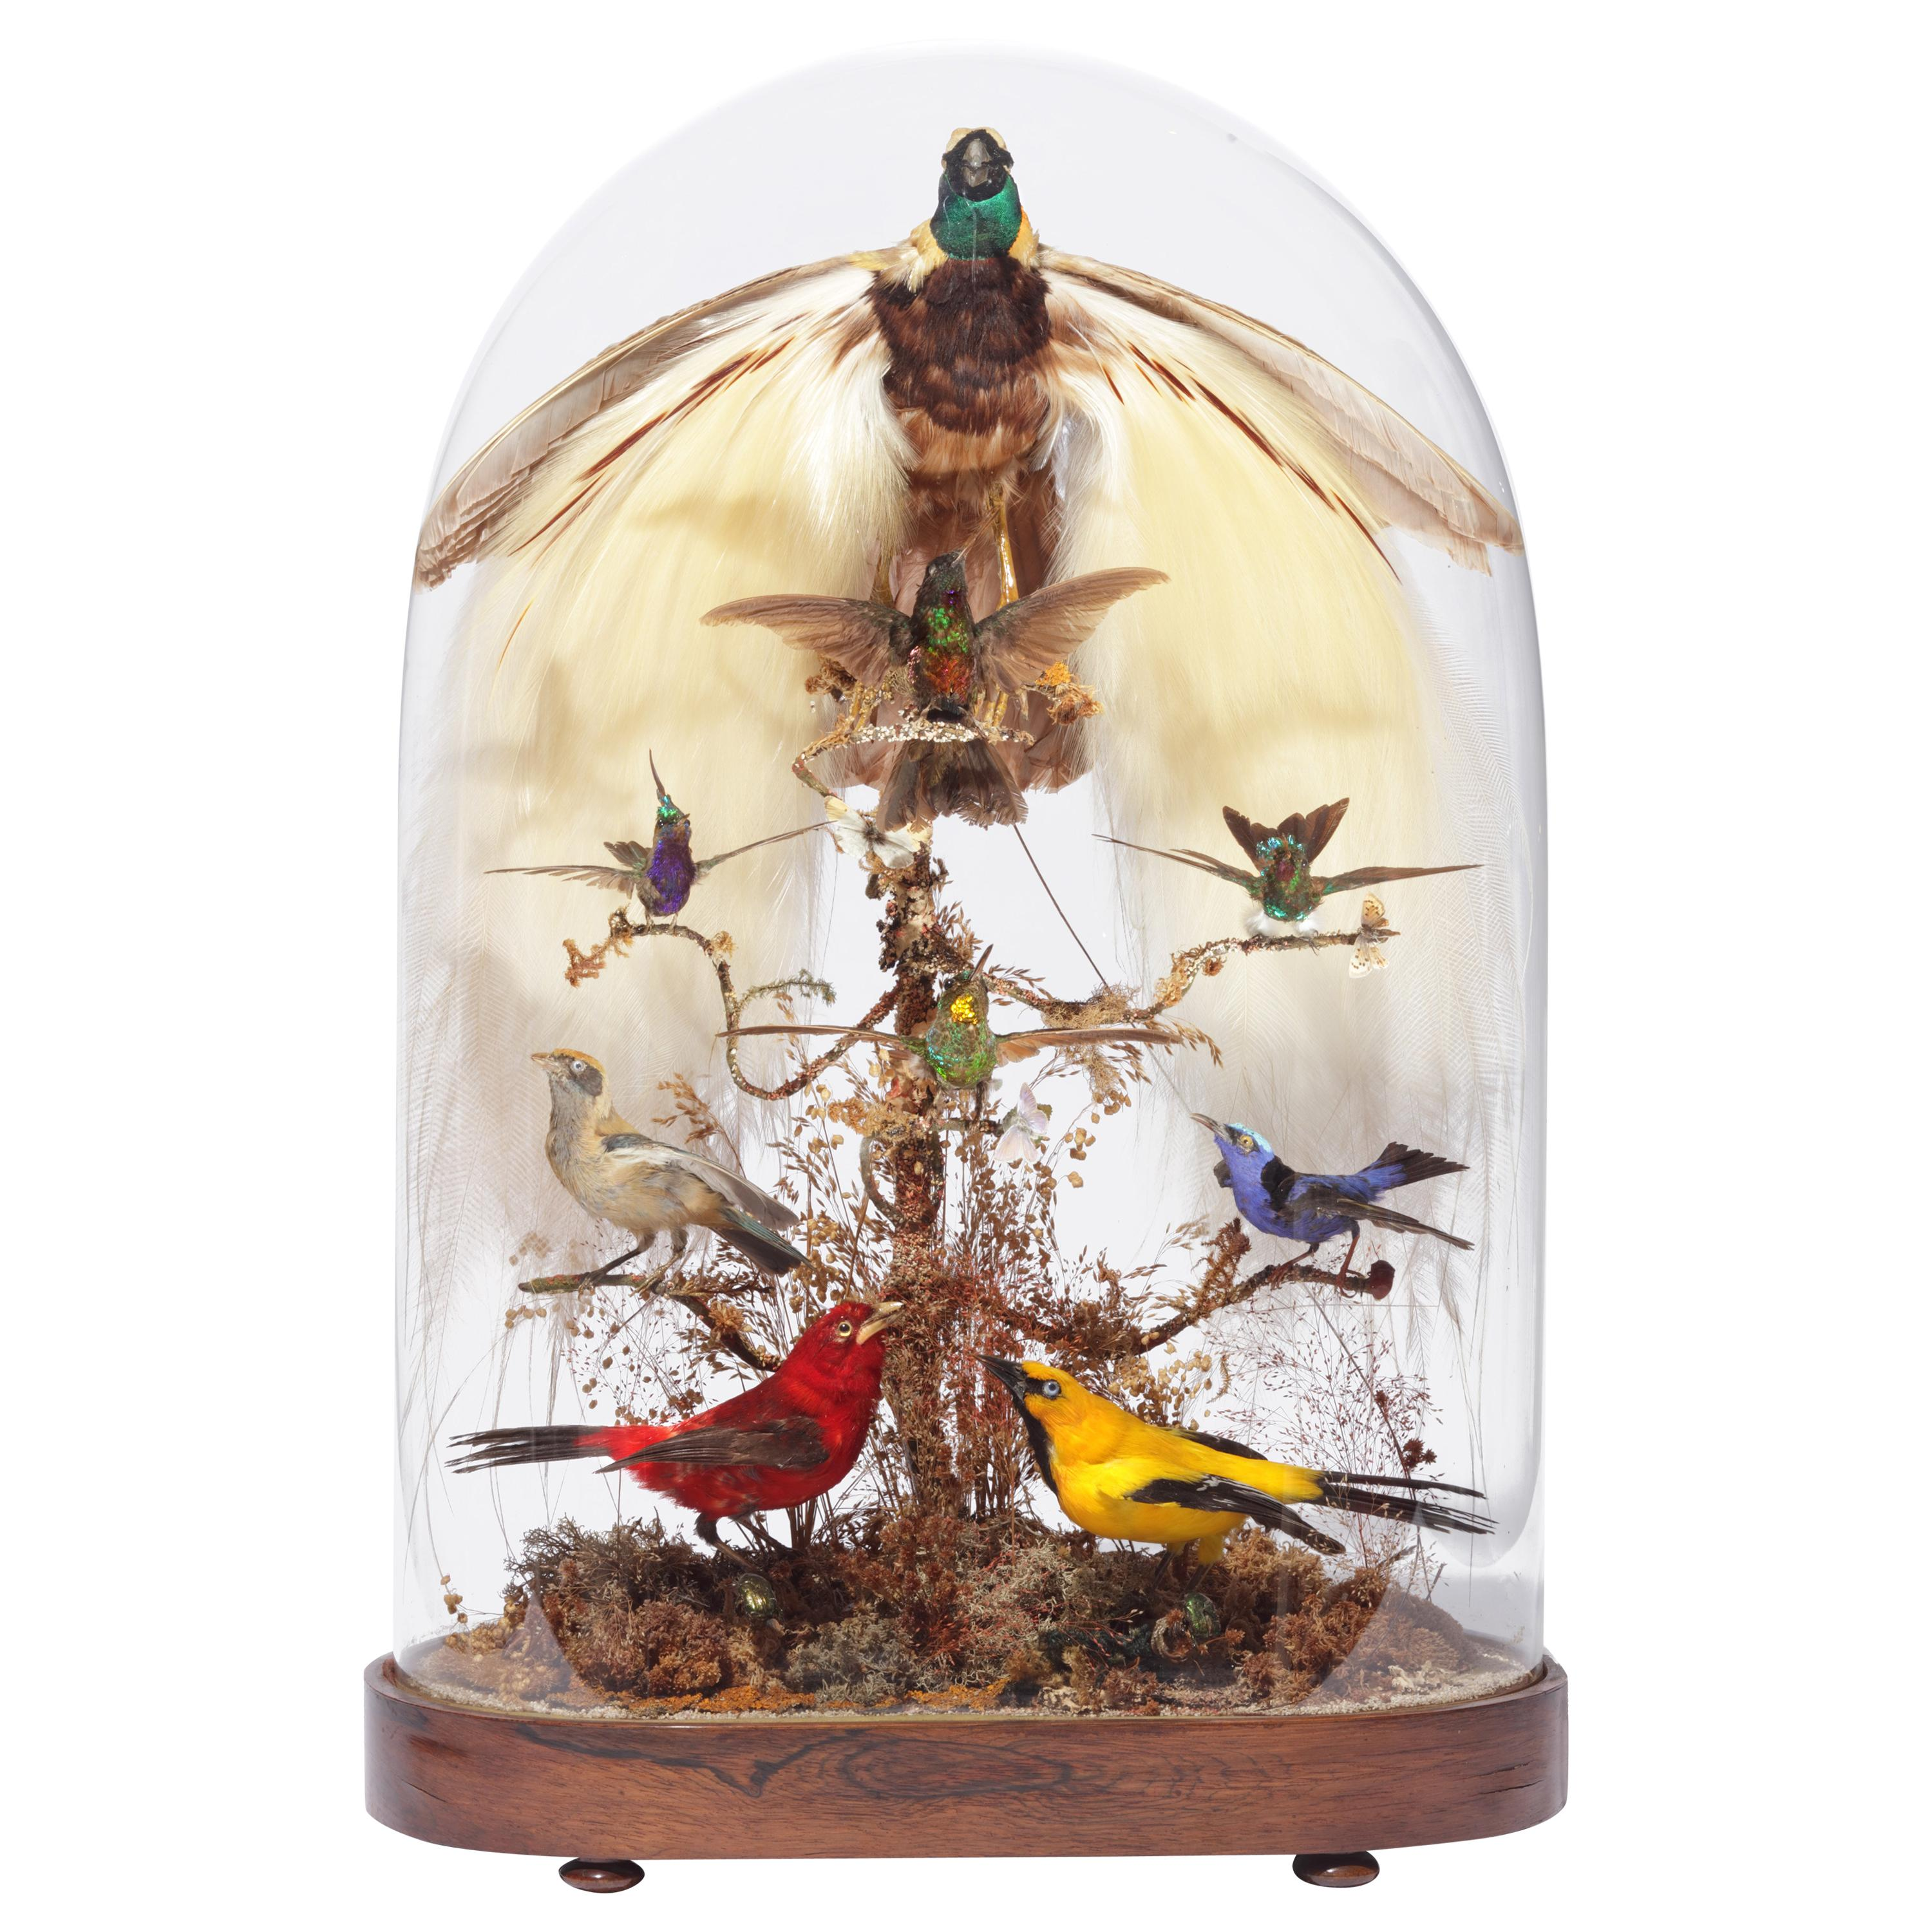 Fabulous Victorian Taxidermy Dome with Taxidermy Bird-of-Paradise, 19th Century